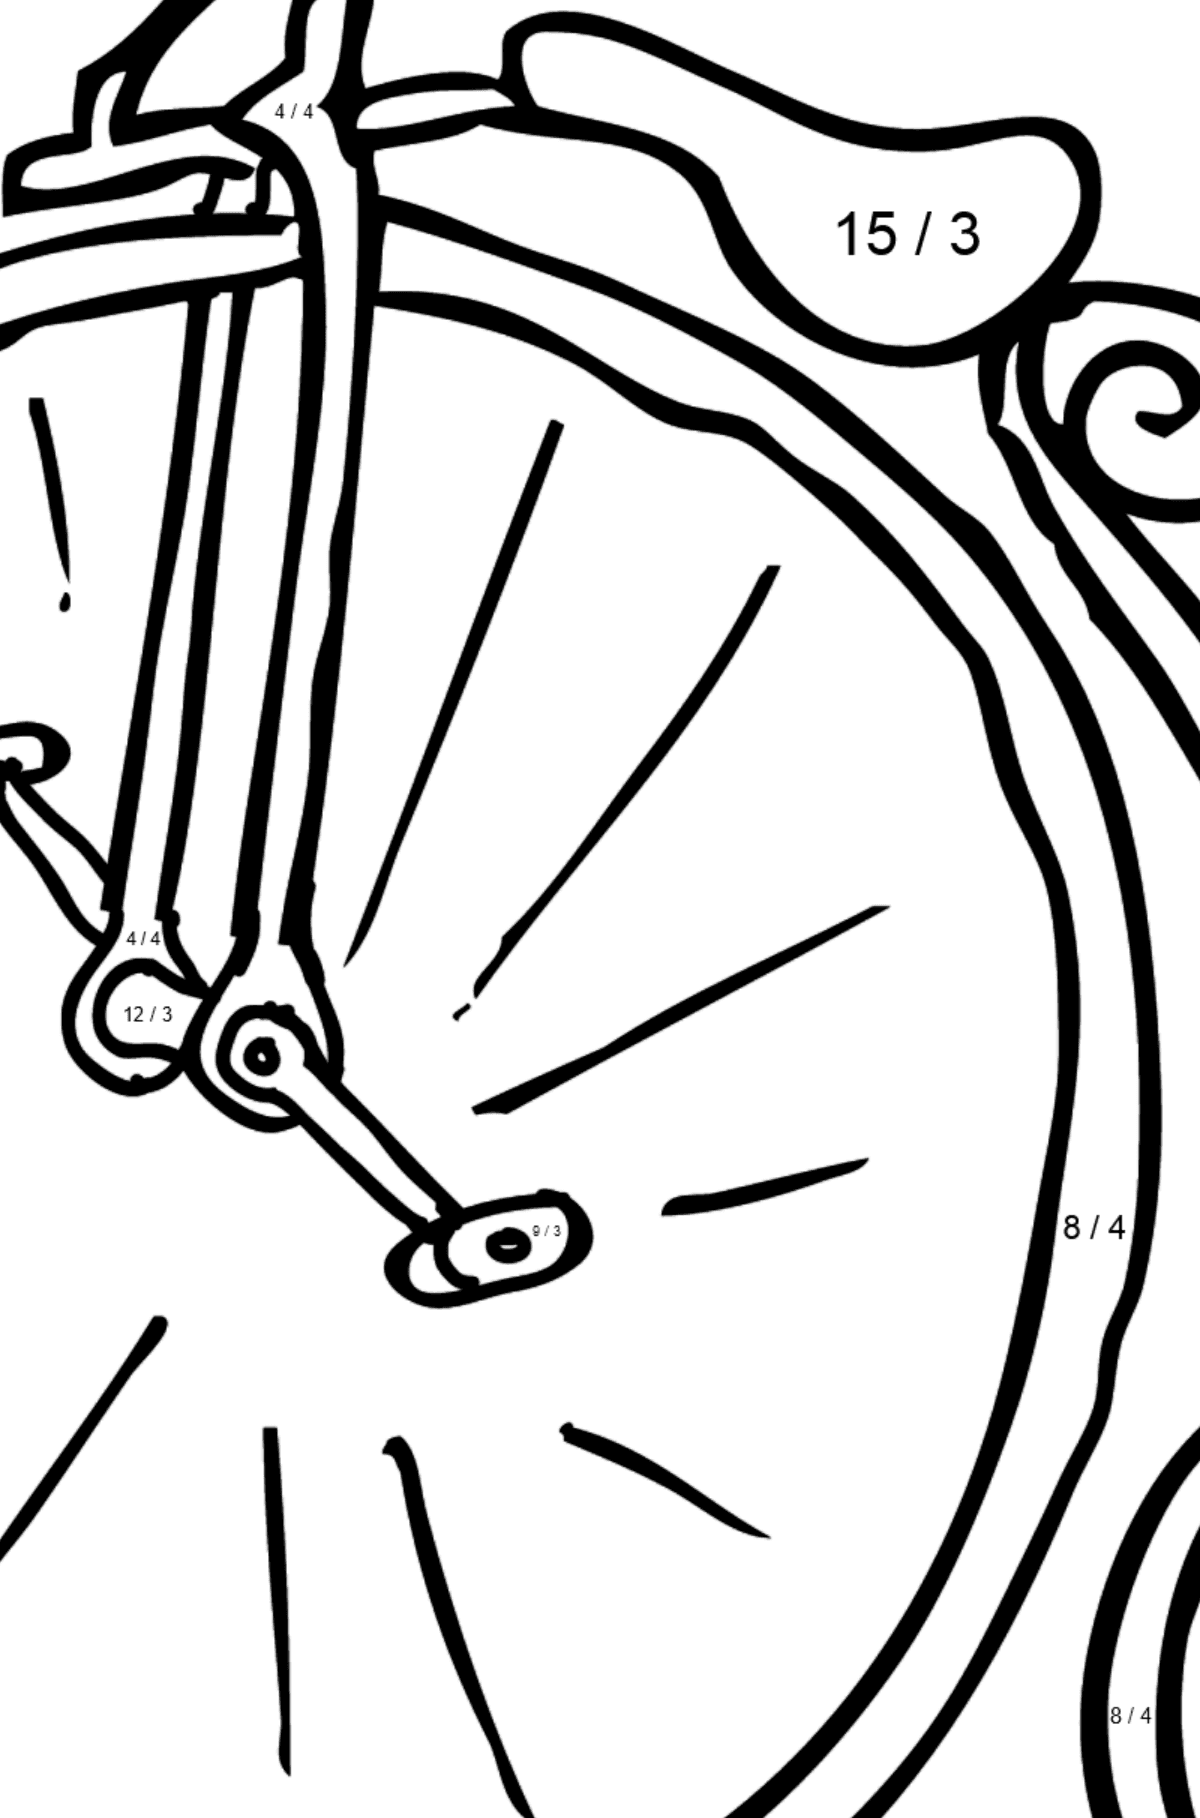 Coloring Page - A High-Wheel Cycle – Unicycle - Math Coloring - Division for Kids